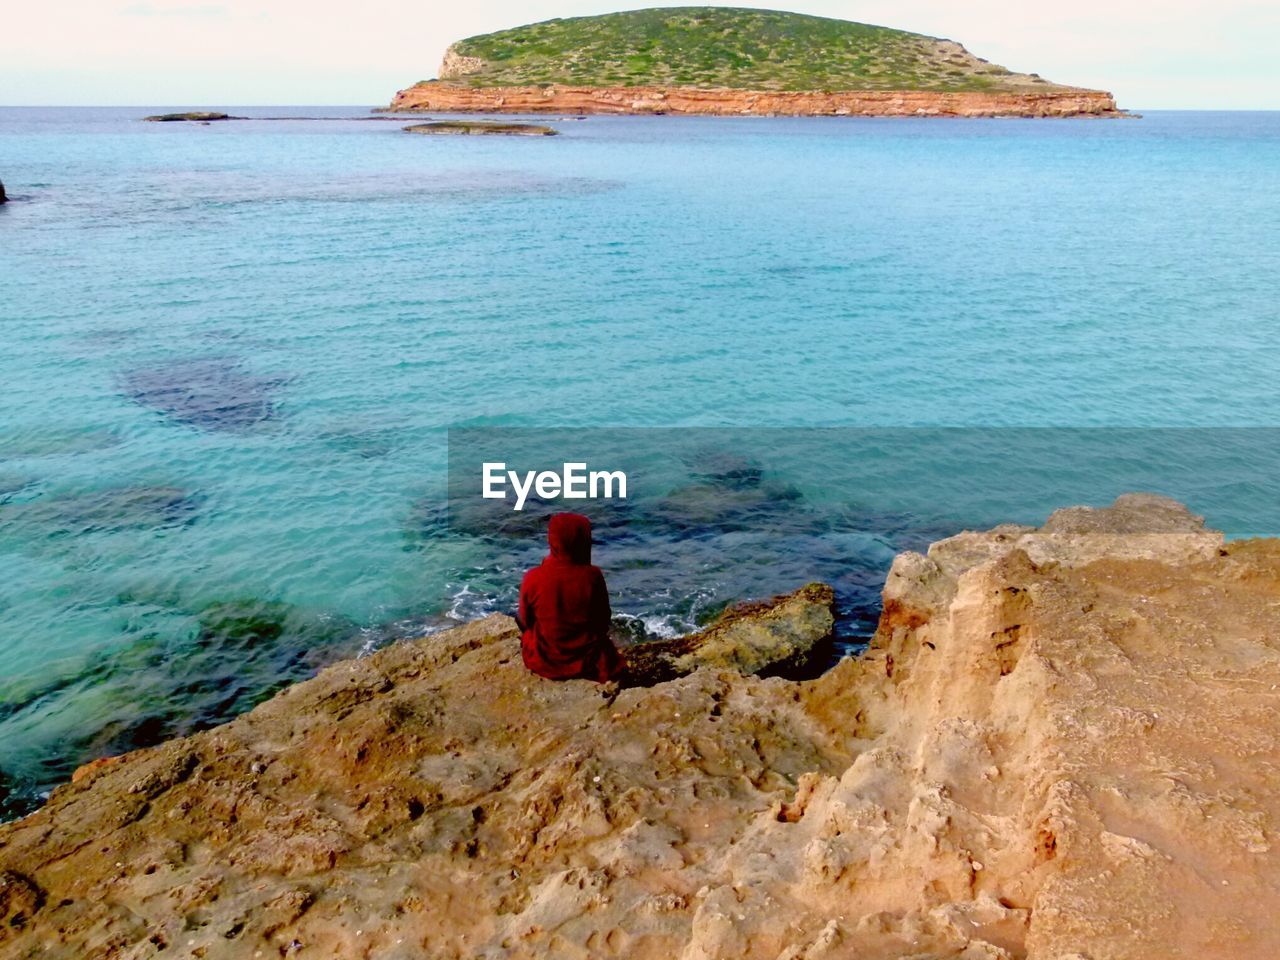 sea, water, nature, beauty in nature, horizon over water, rear view, rock - object, scenics, day, red, tranquil scene, real people, beach, outdoors, tranquility, one person, sky, people